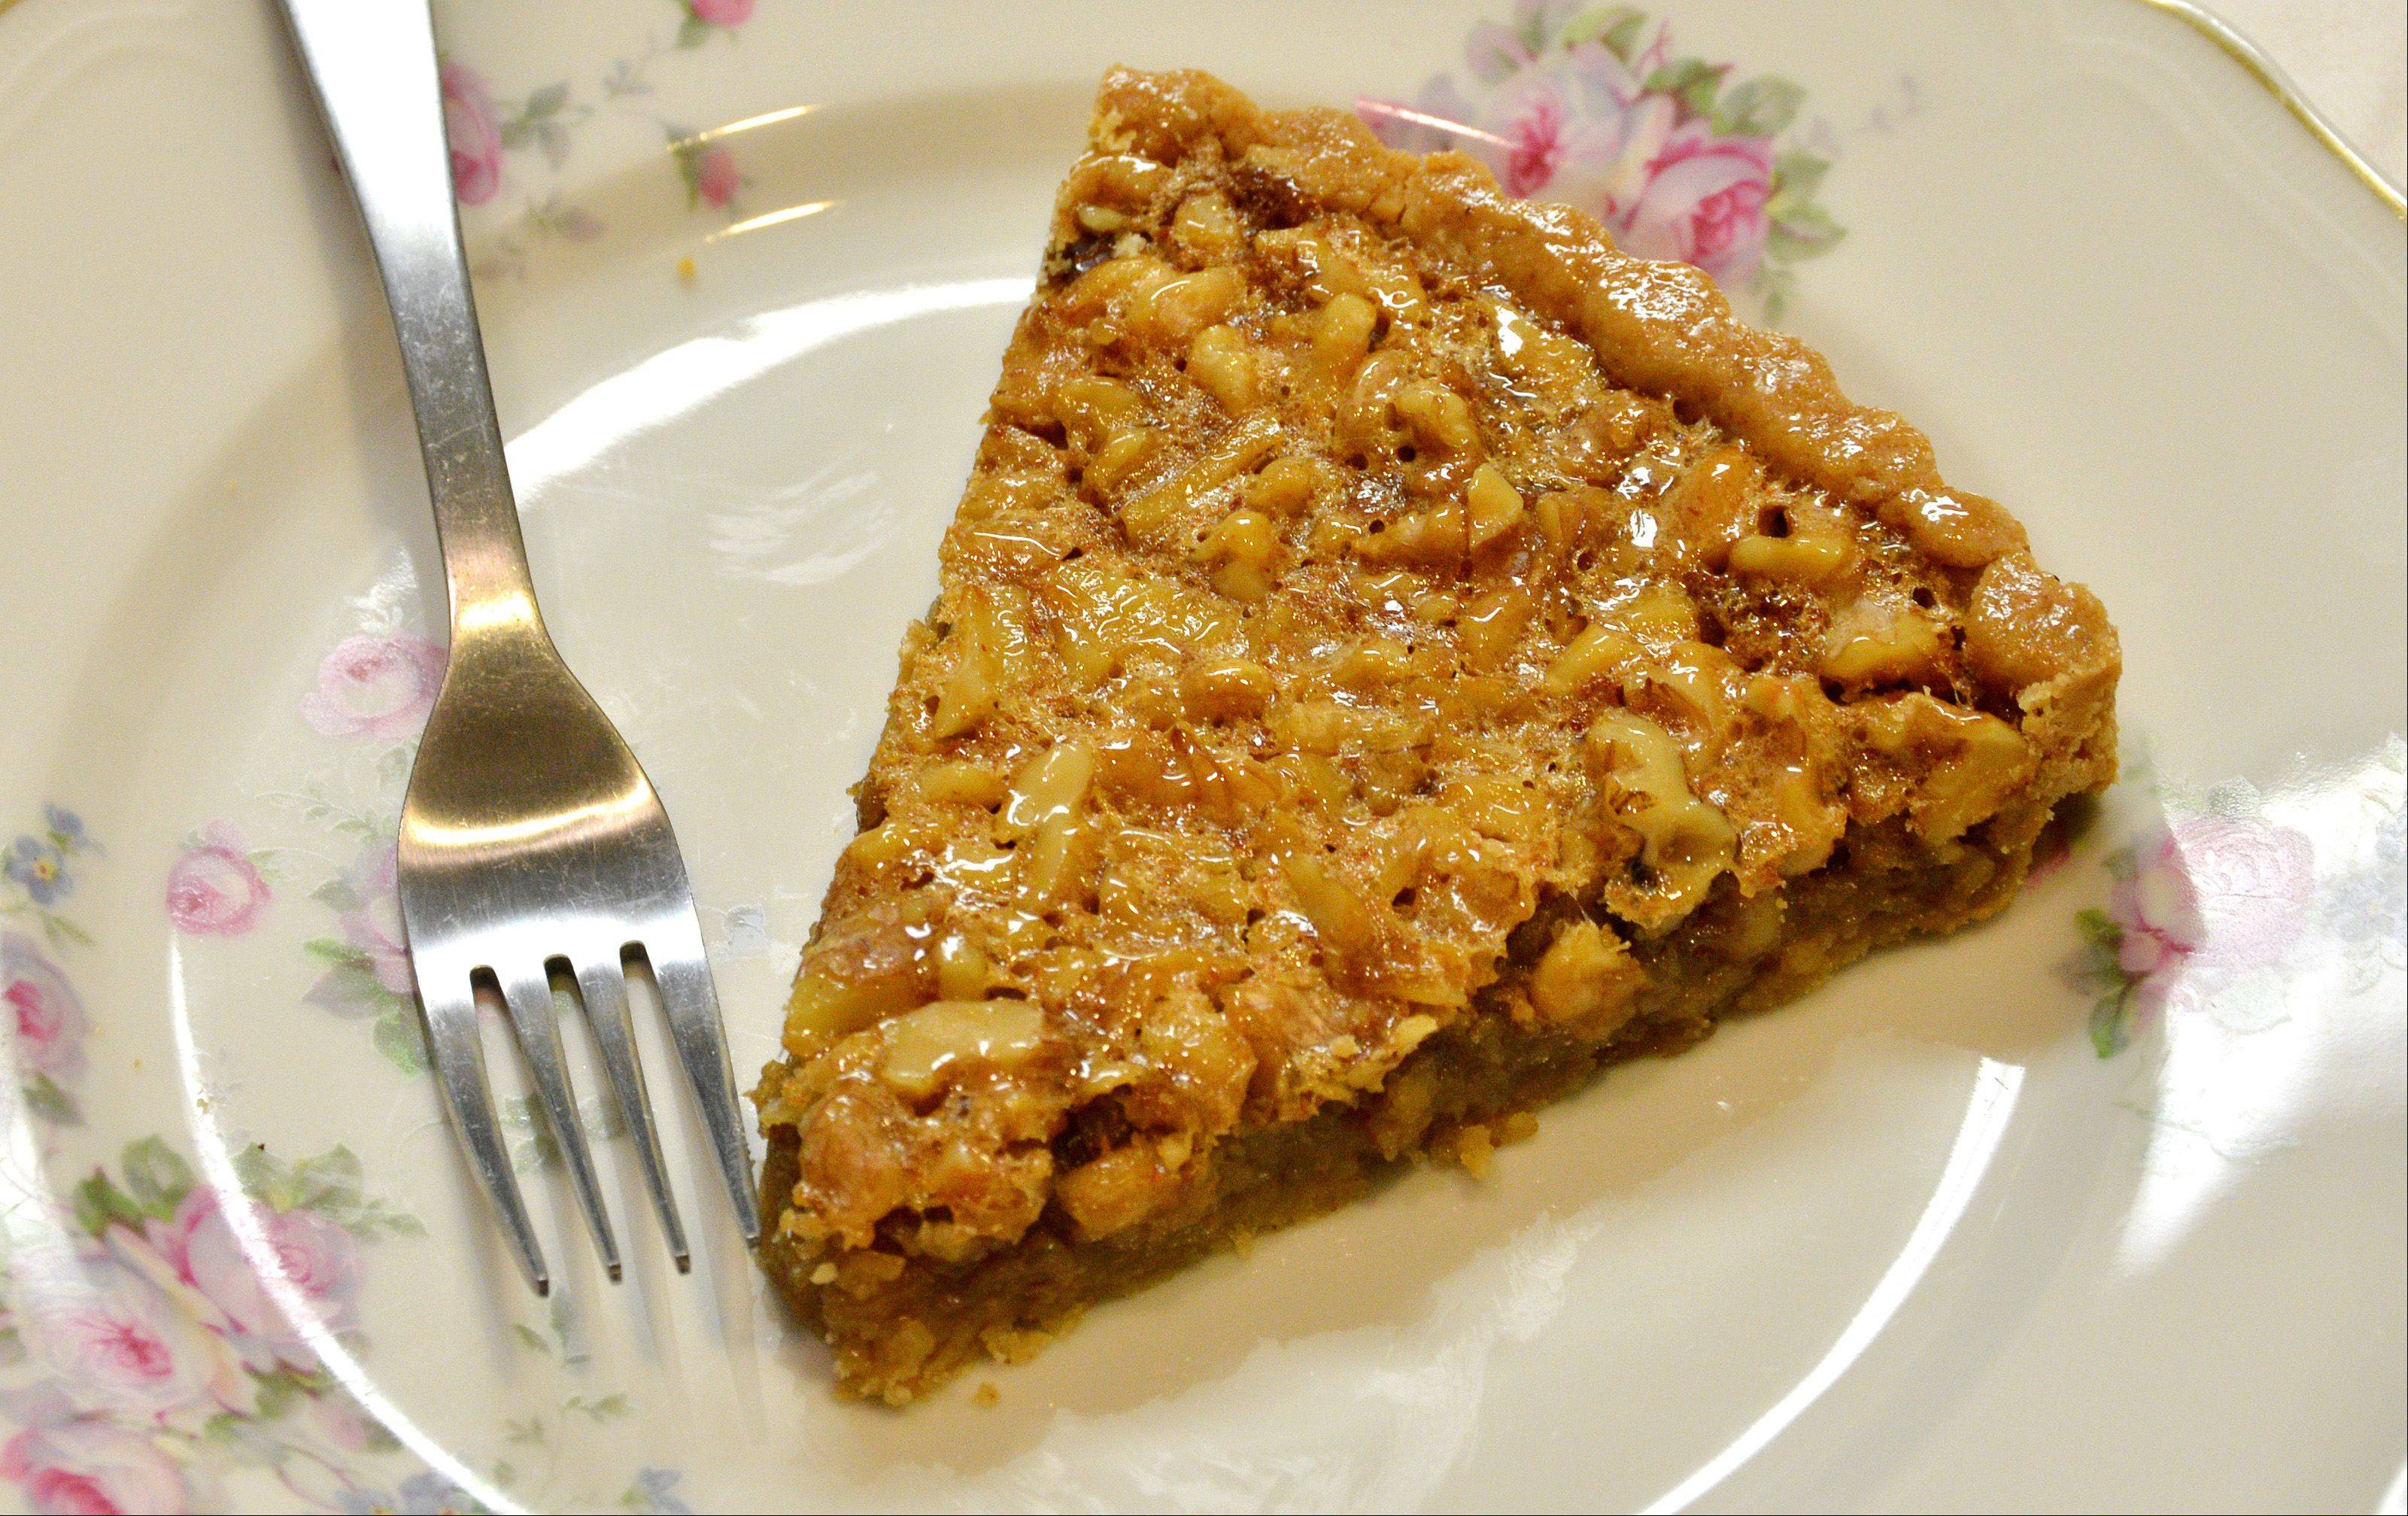 AnnieOverboe gave traditional pecan pie a makeover with walnuts as the starring nut and a more savory spiced crust.